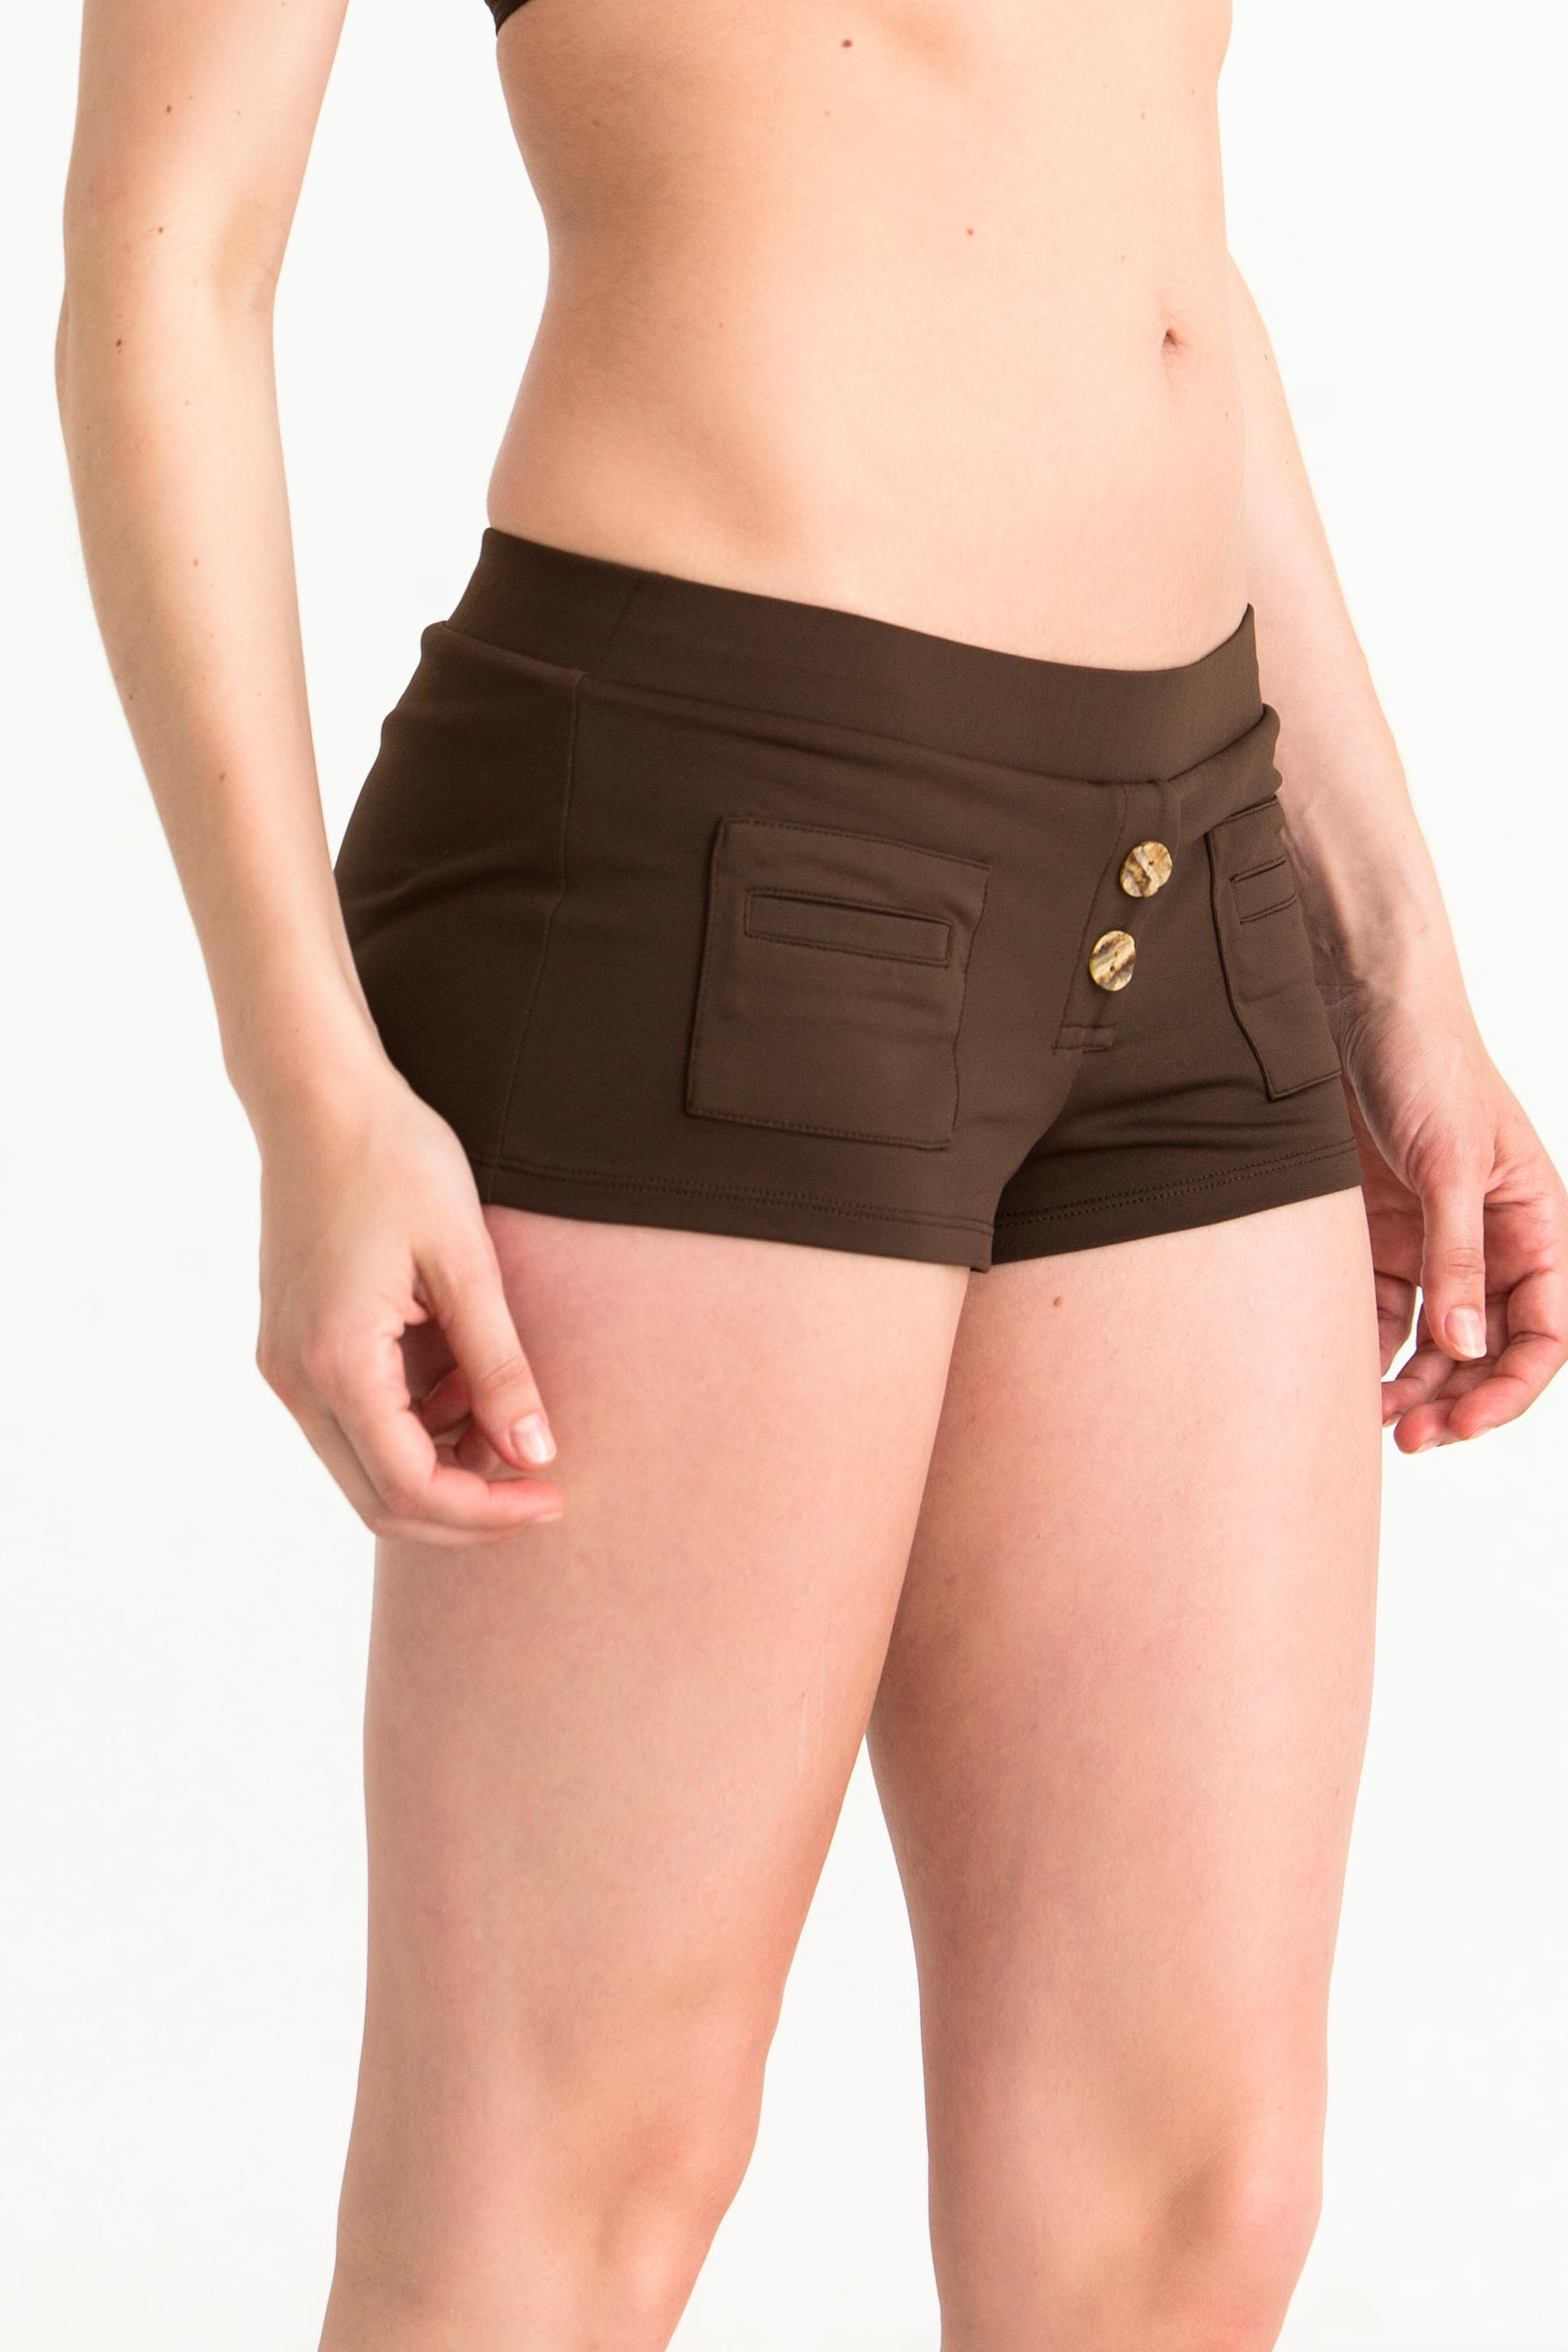 bib-bottom-short-pockets-daniela-choco